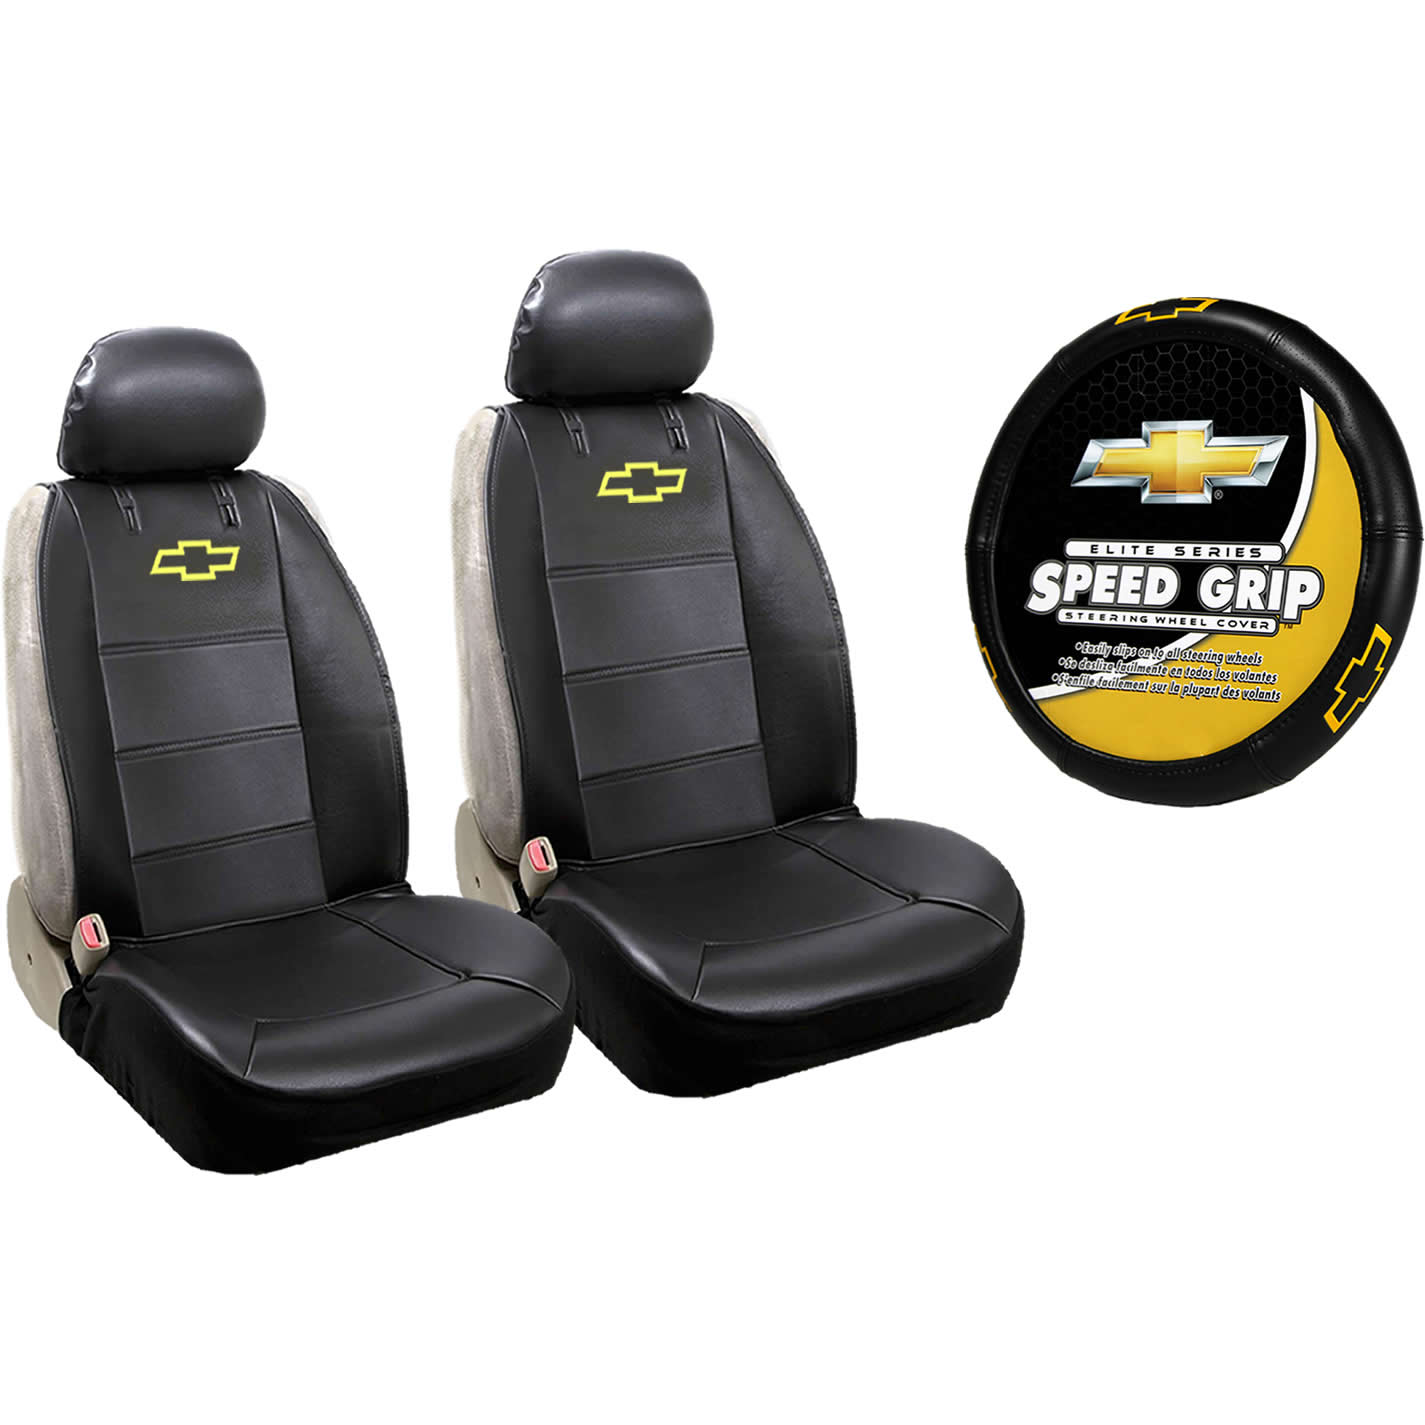 2 Chevy Synthetic Leather Sideless Seat Covers & Steering Wheel Cover Set Car Truck Suv